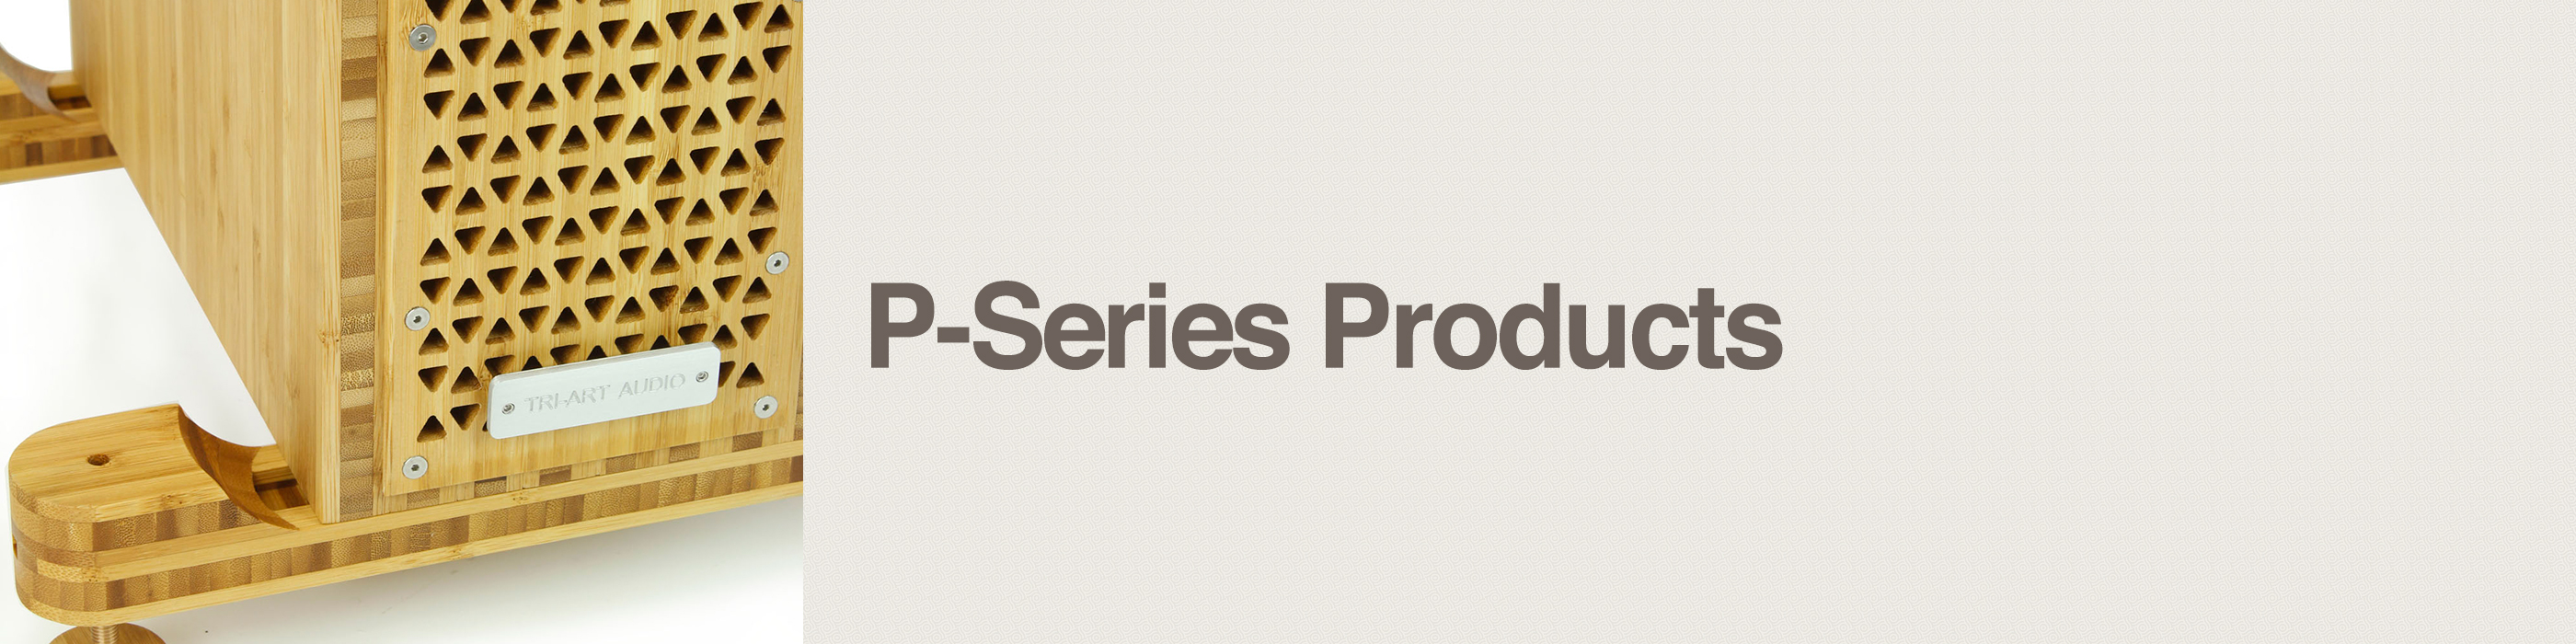 p-series products header